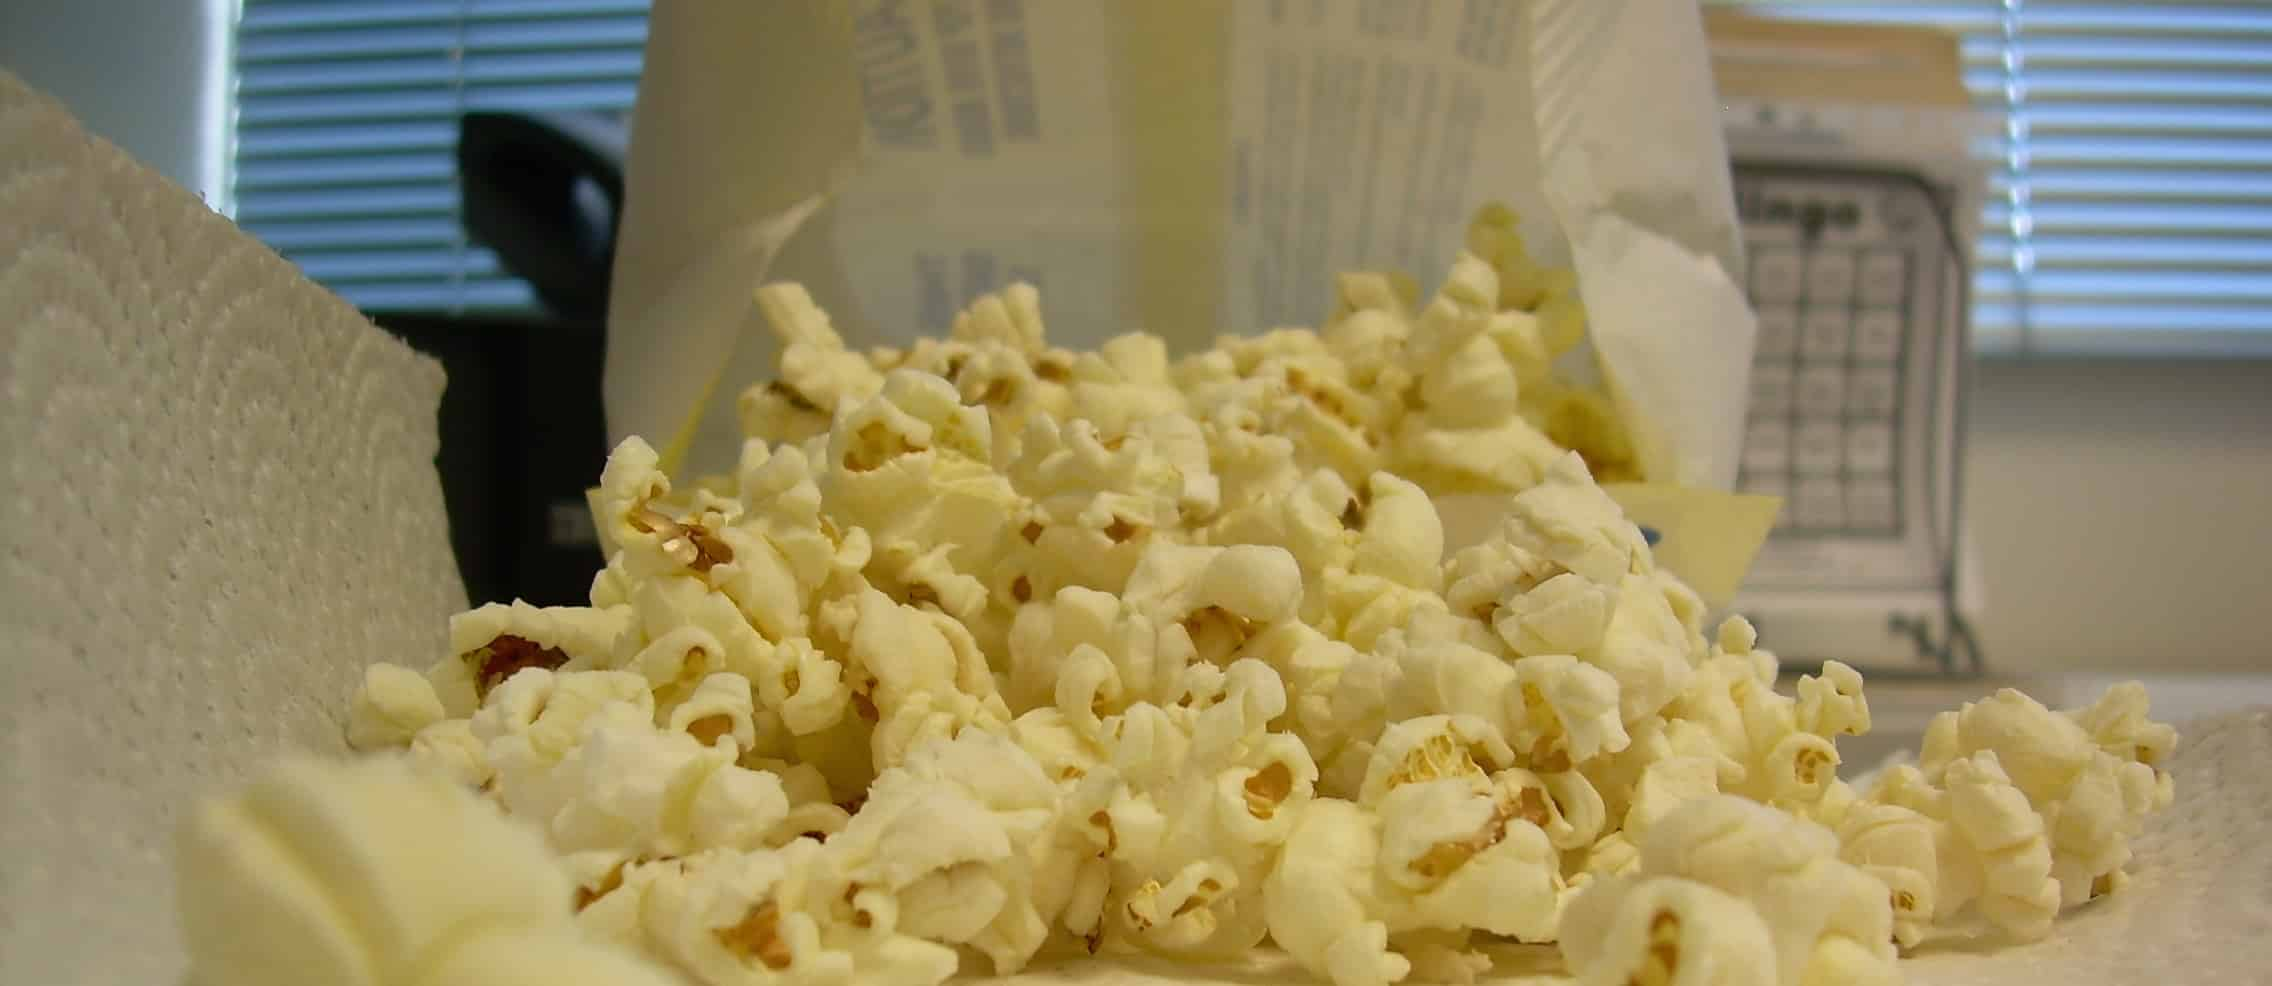 Why You Should Avoid Butter-Flavored Microwave Popcorn